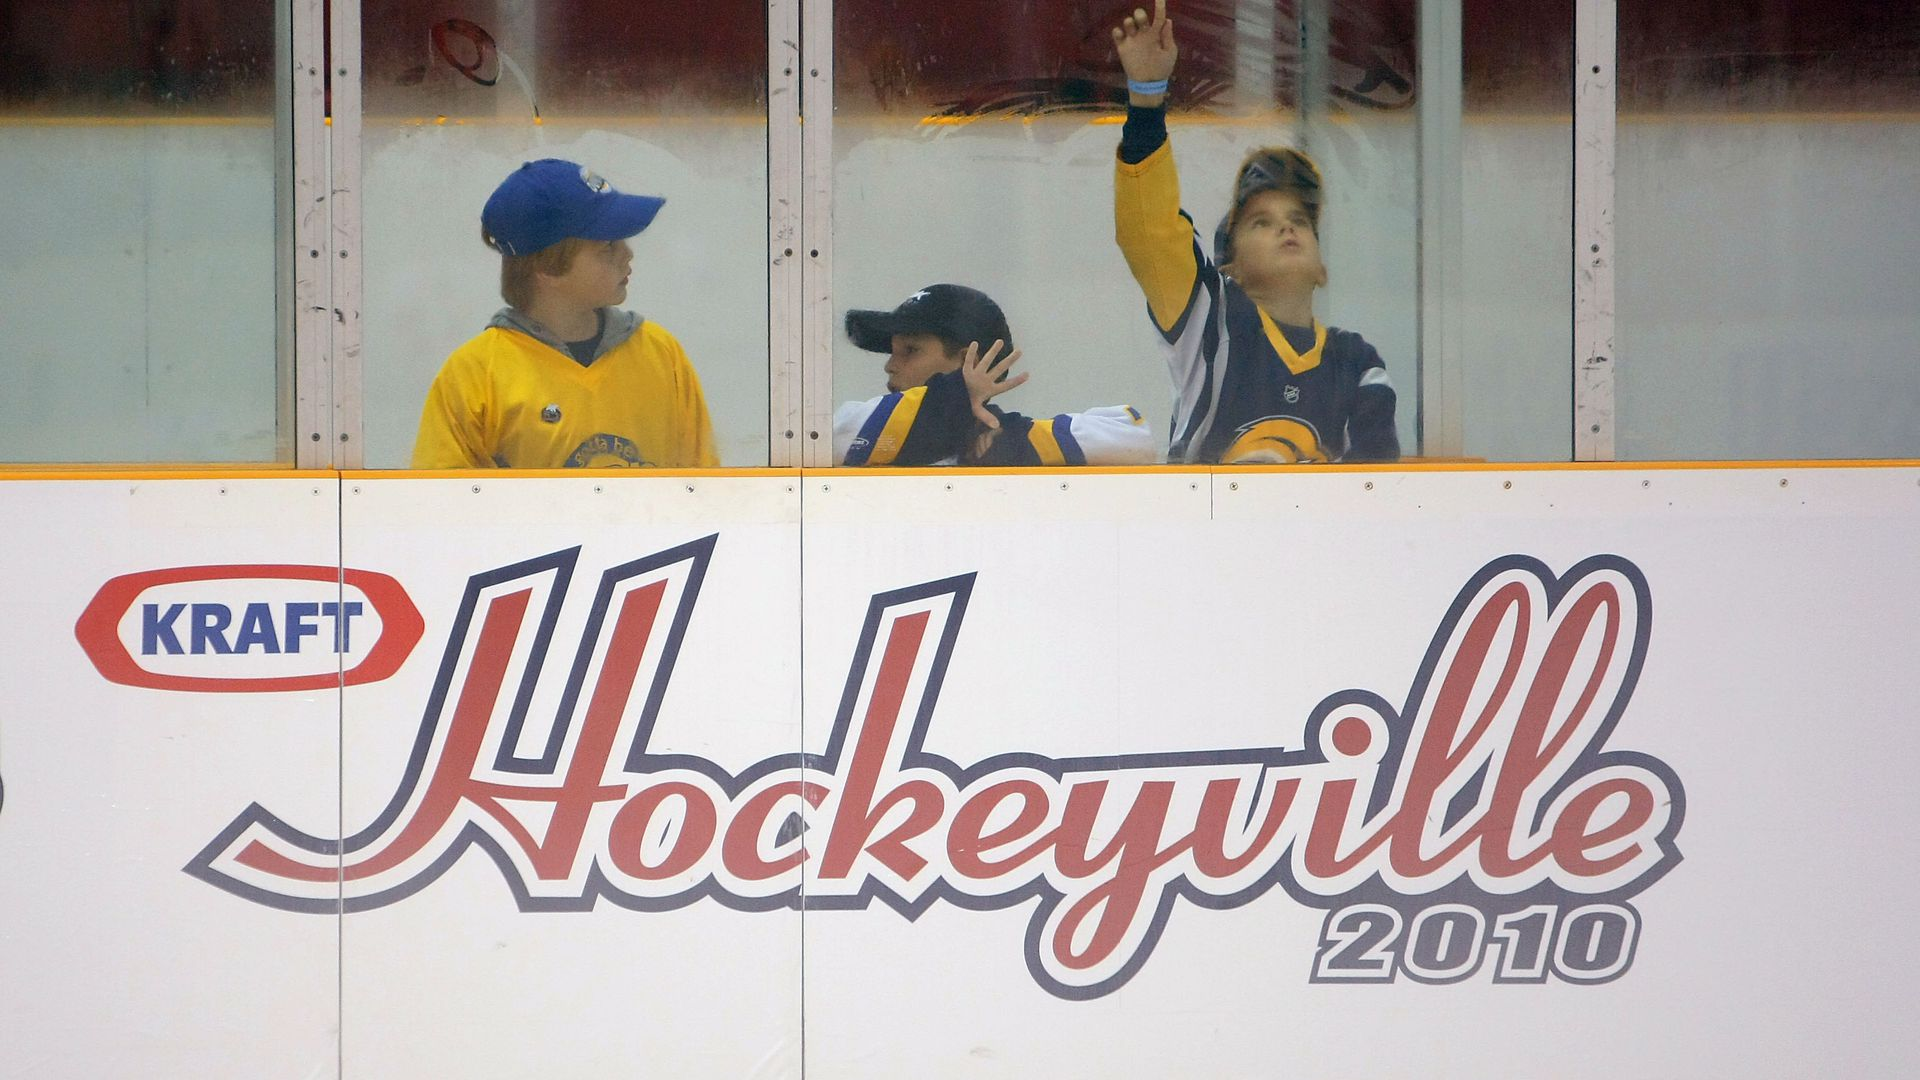 Three children at hockey rink watching through the glass, with a Kraft sign etched into the wall just below them